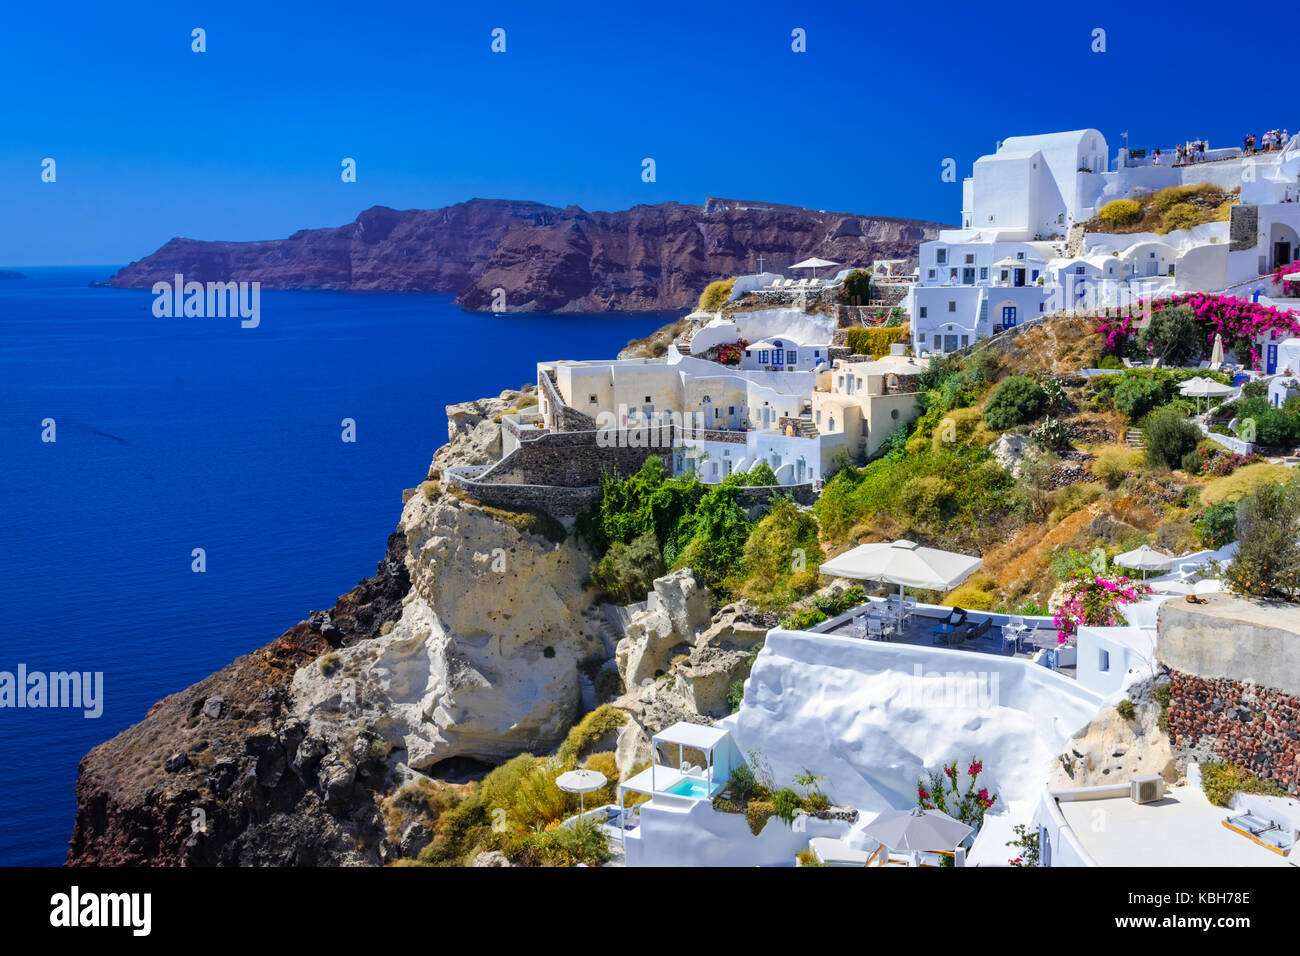 Oia town, Santorini island, Greece. Traditional and famous white houses and churches  with blue domes over the Caldera, - Stock Image